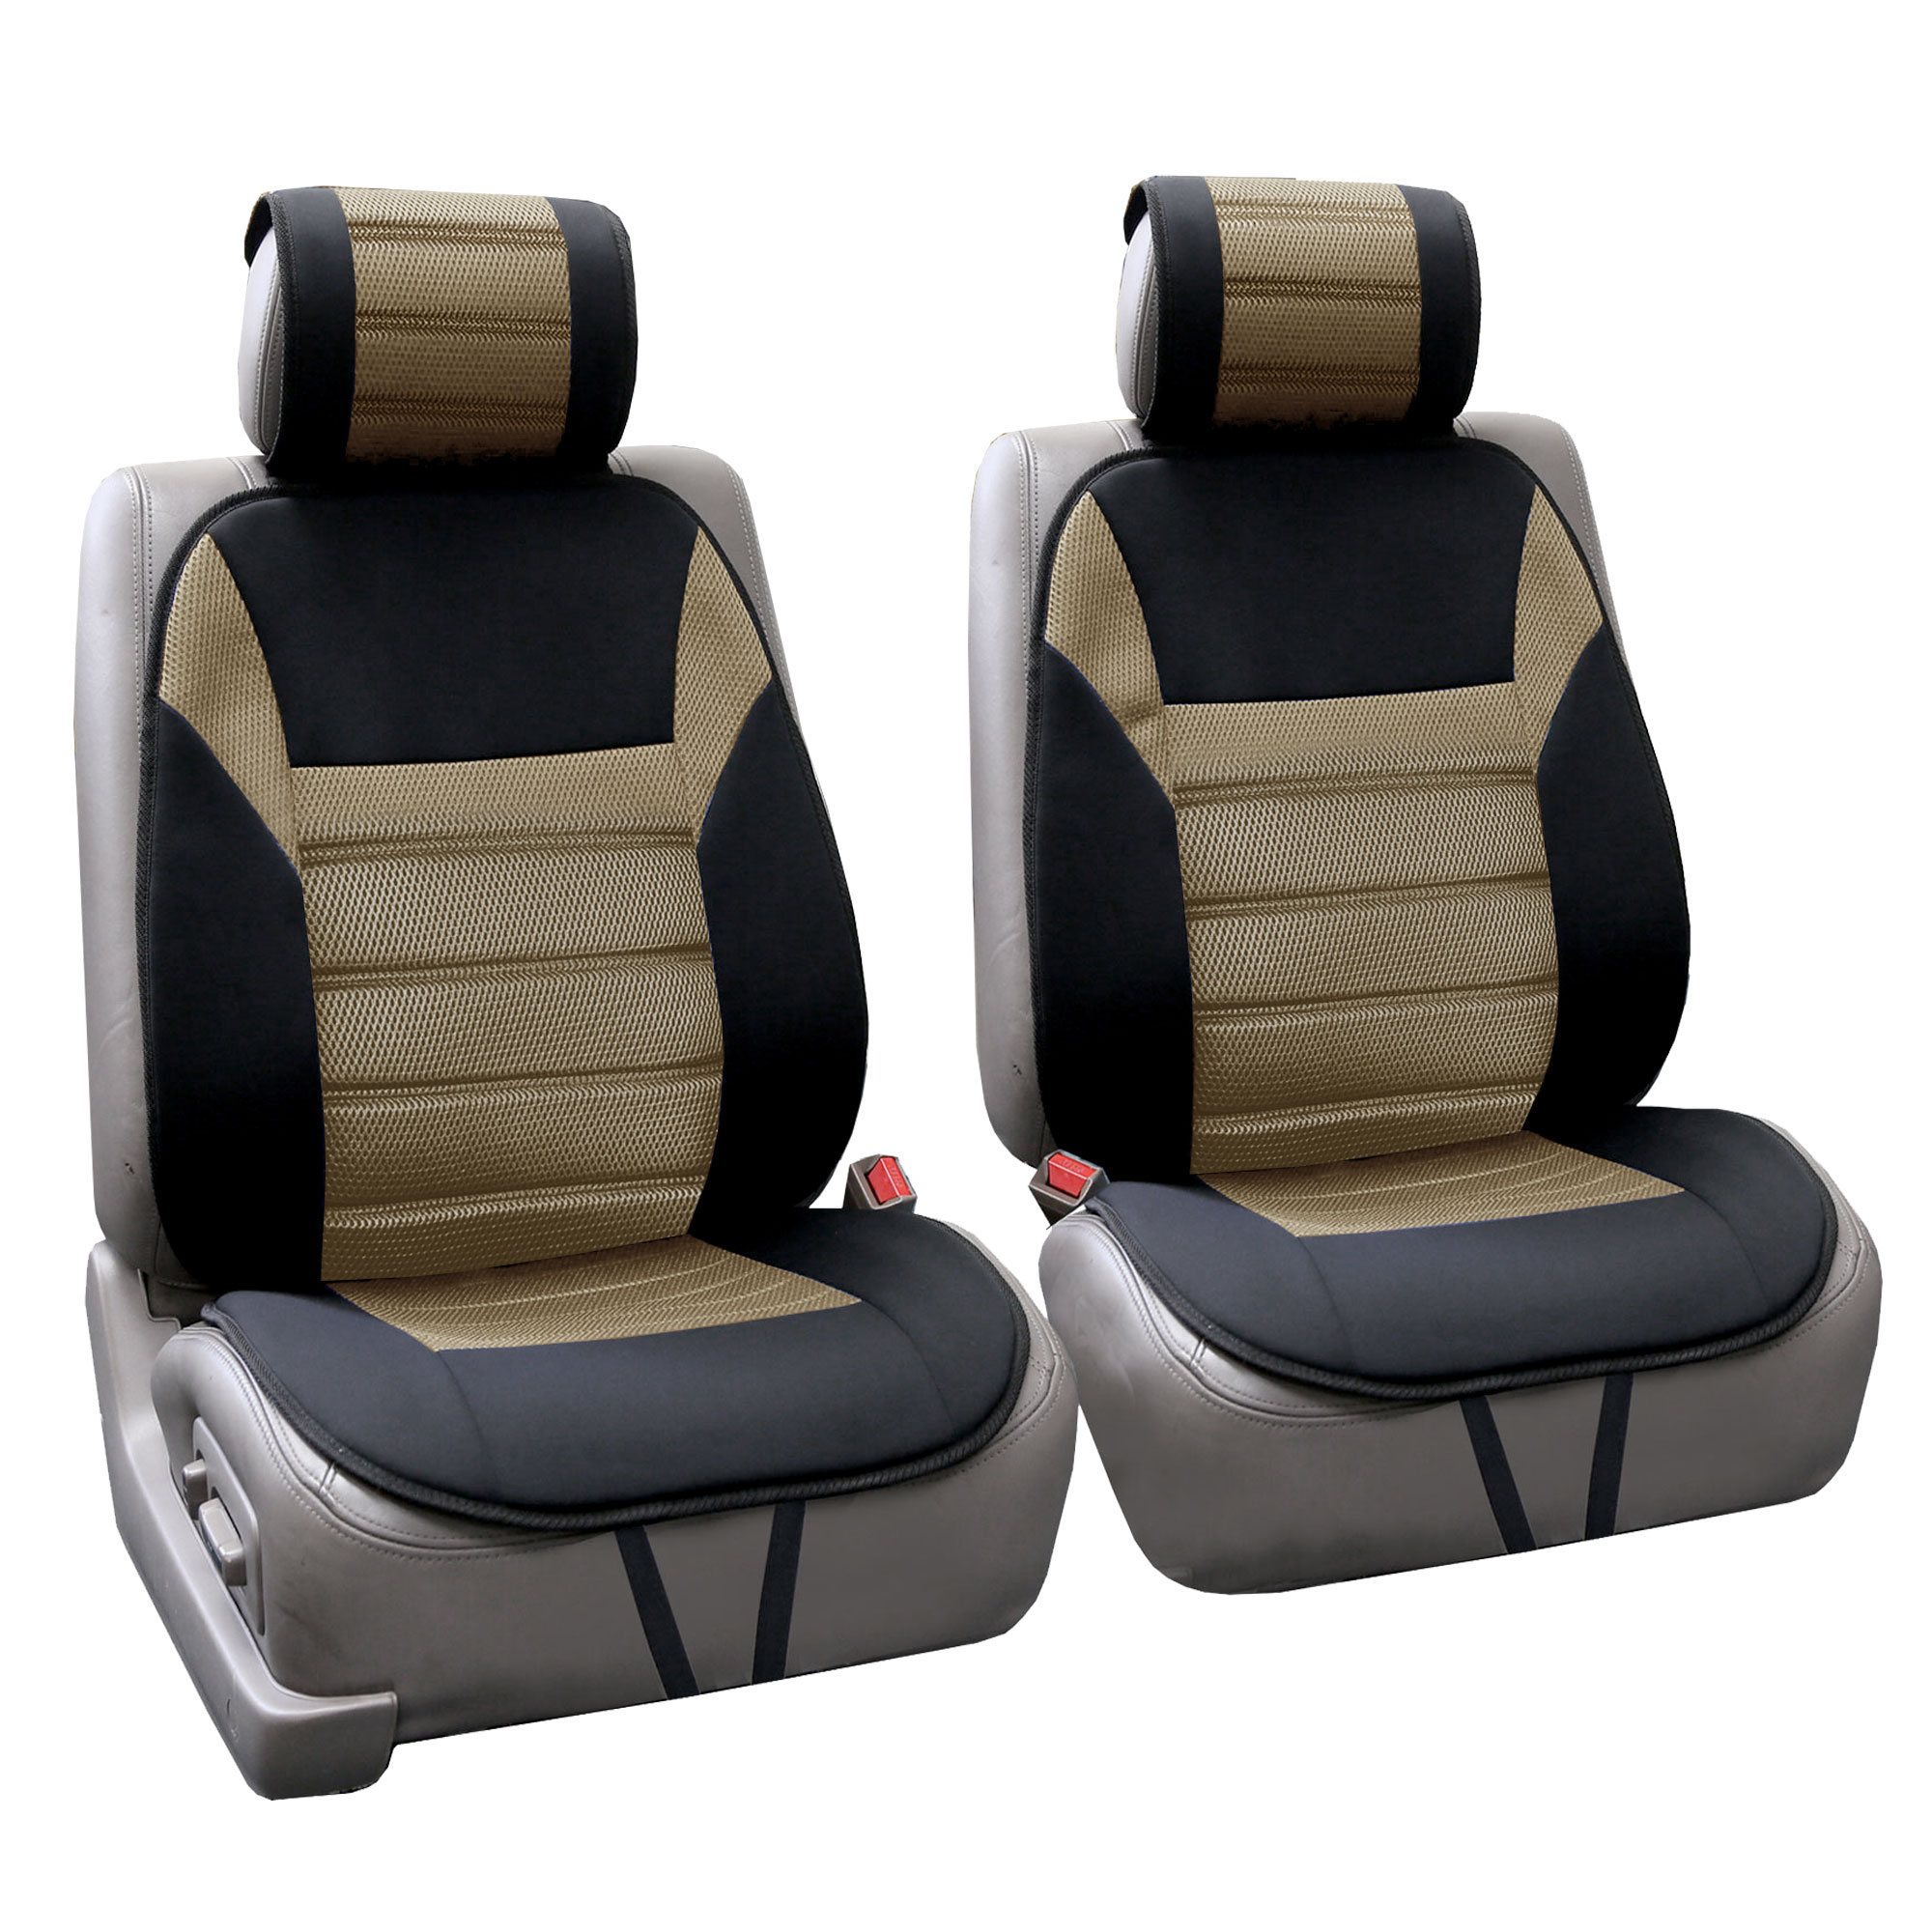 3 d air mesh design car seat cushion pads complete set ebay. Black Bedroom Furniture Sets. Home Design Ideas